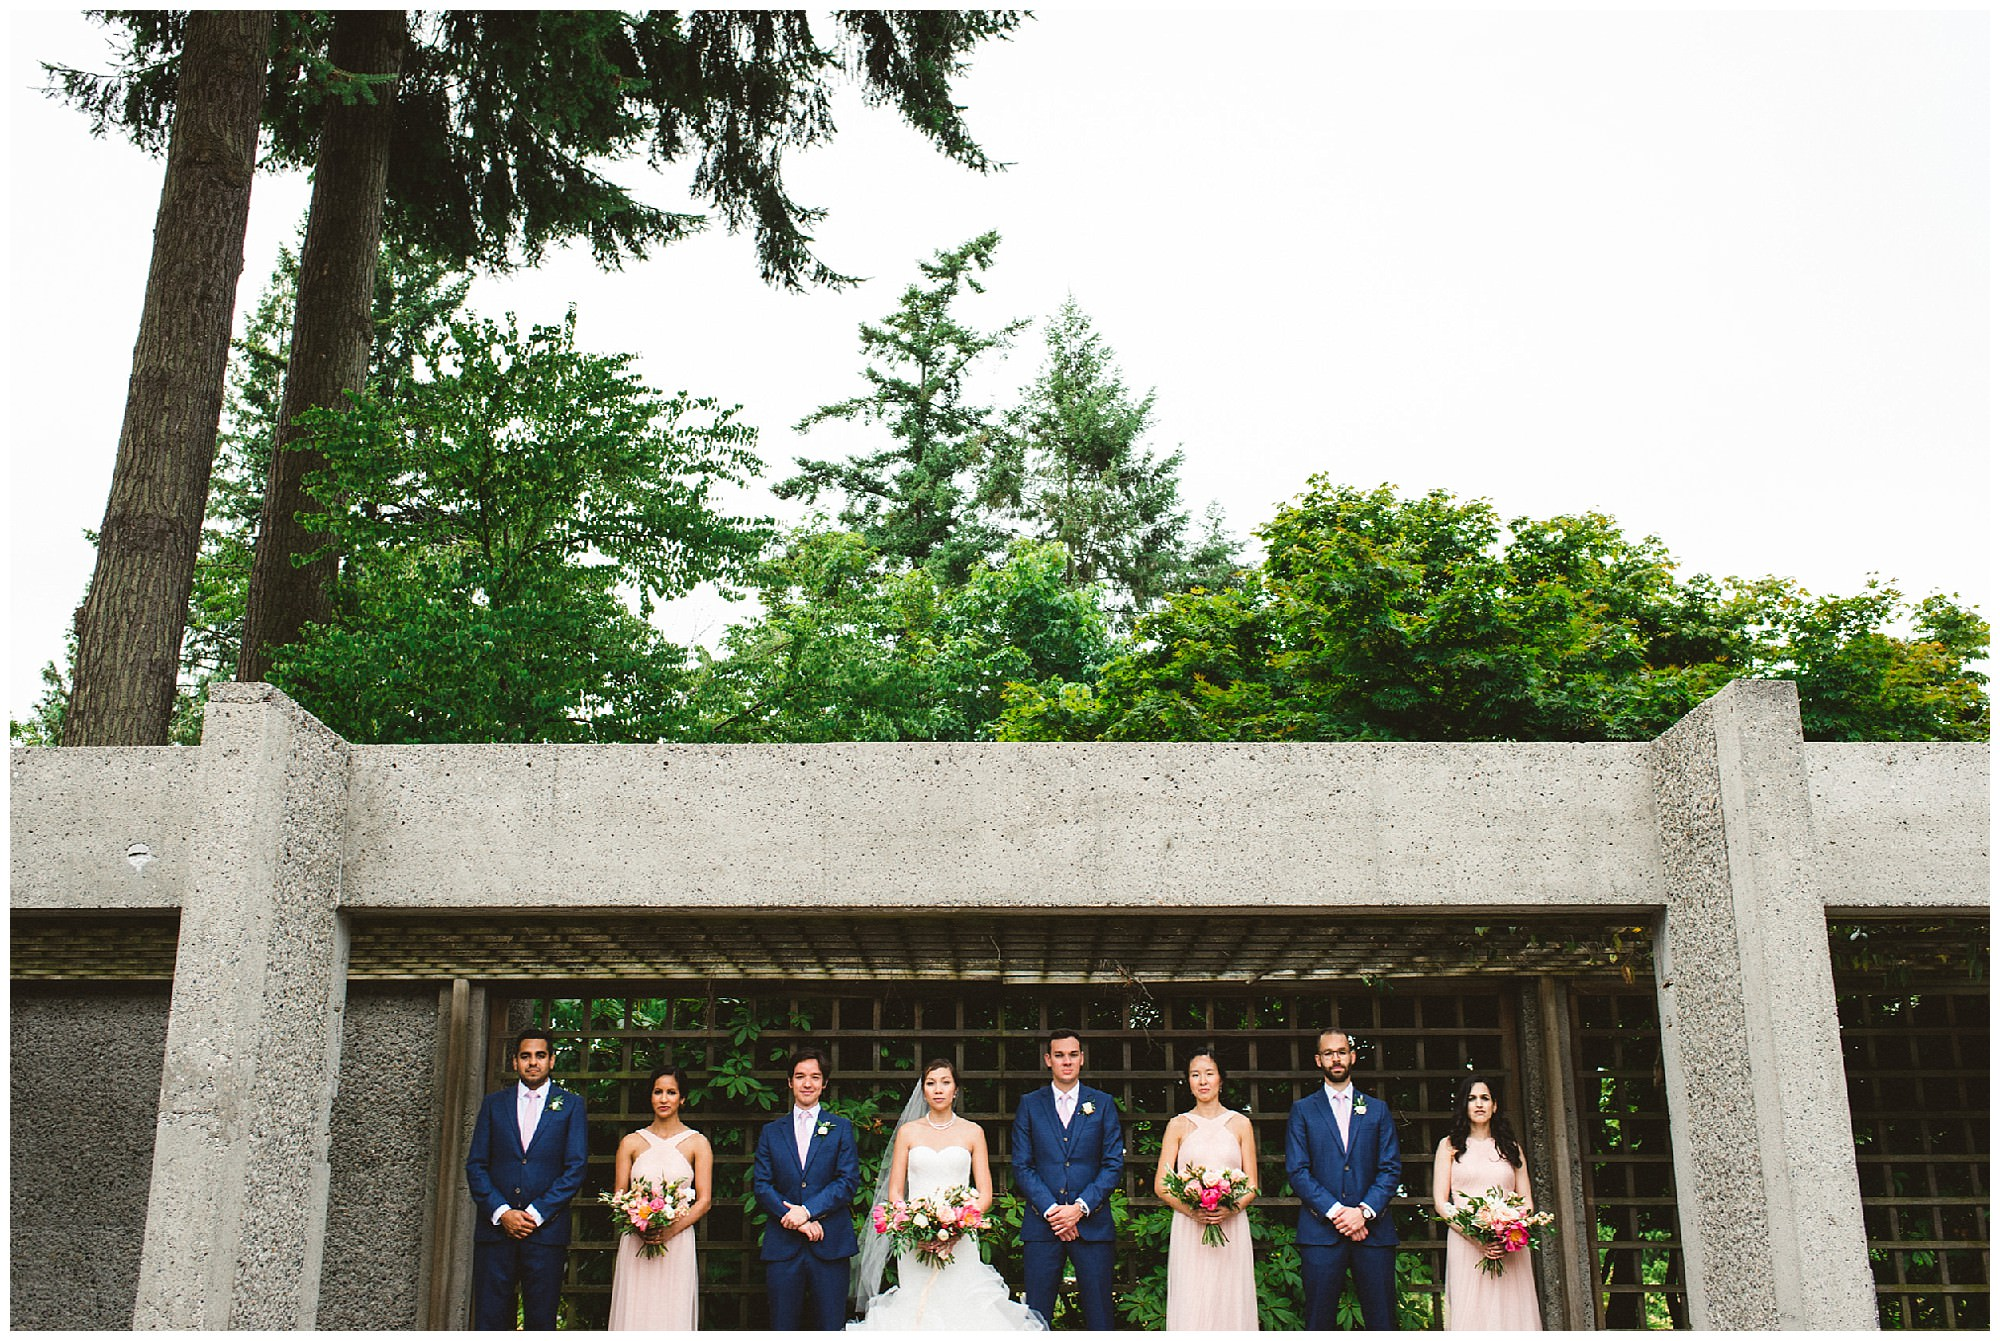 CecilGreenParkhouseWedding_Vancouver_RonnieLeeHillPhotography_1070